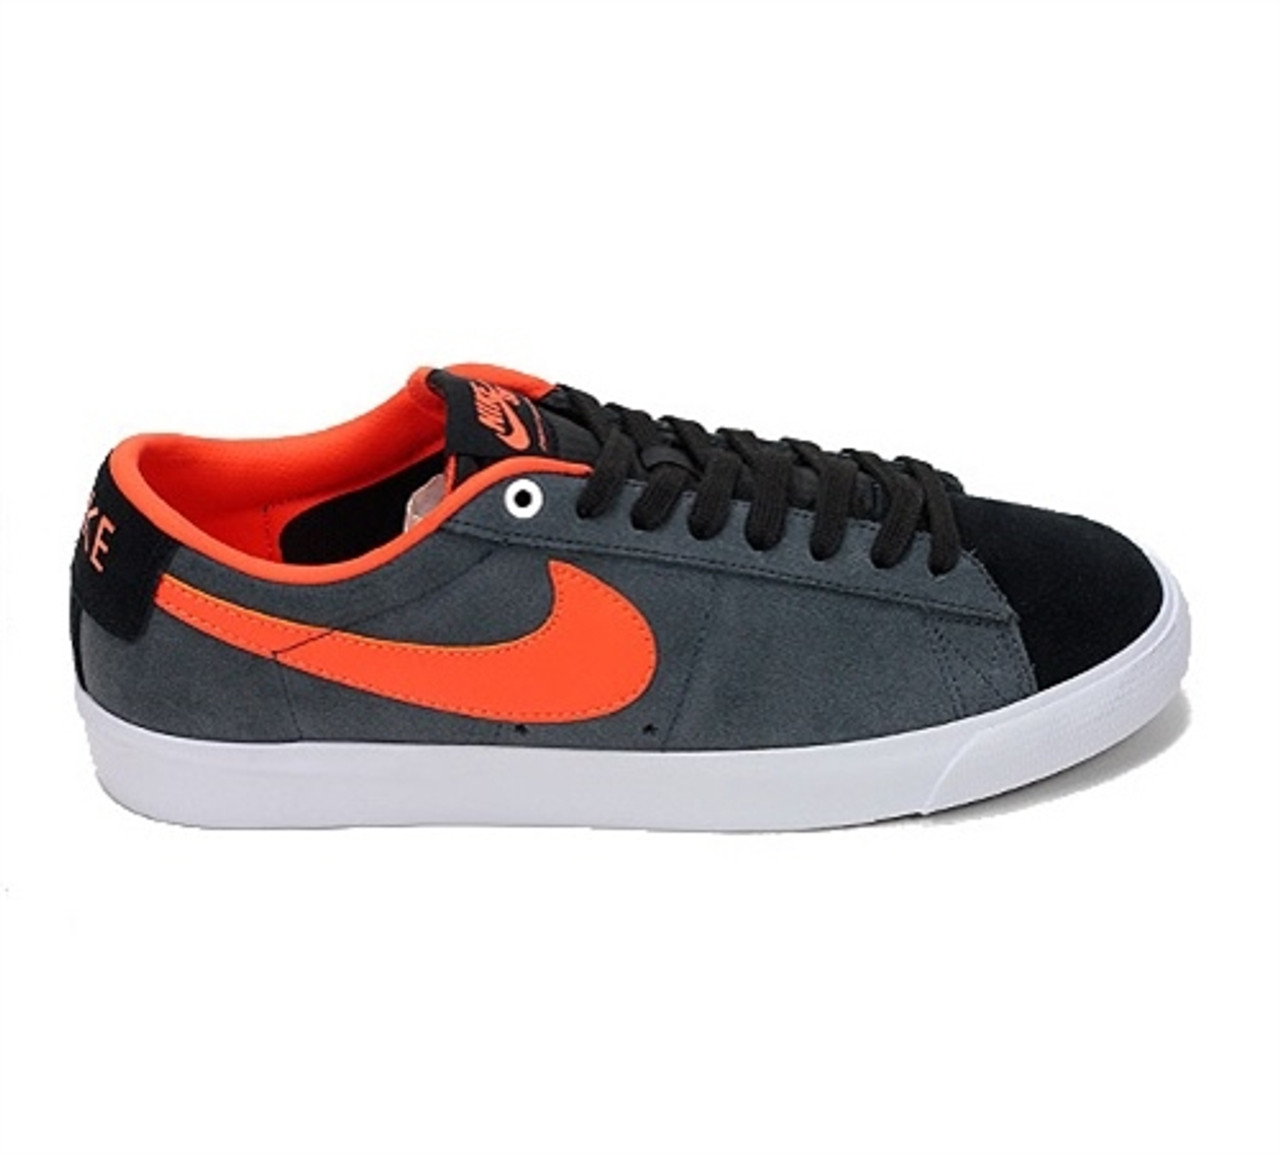 best service ff8e2 df377 Nike SB Blazer Low Grant Taylor Skate Shoes Black Turf Orange